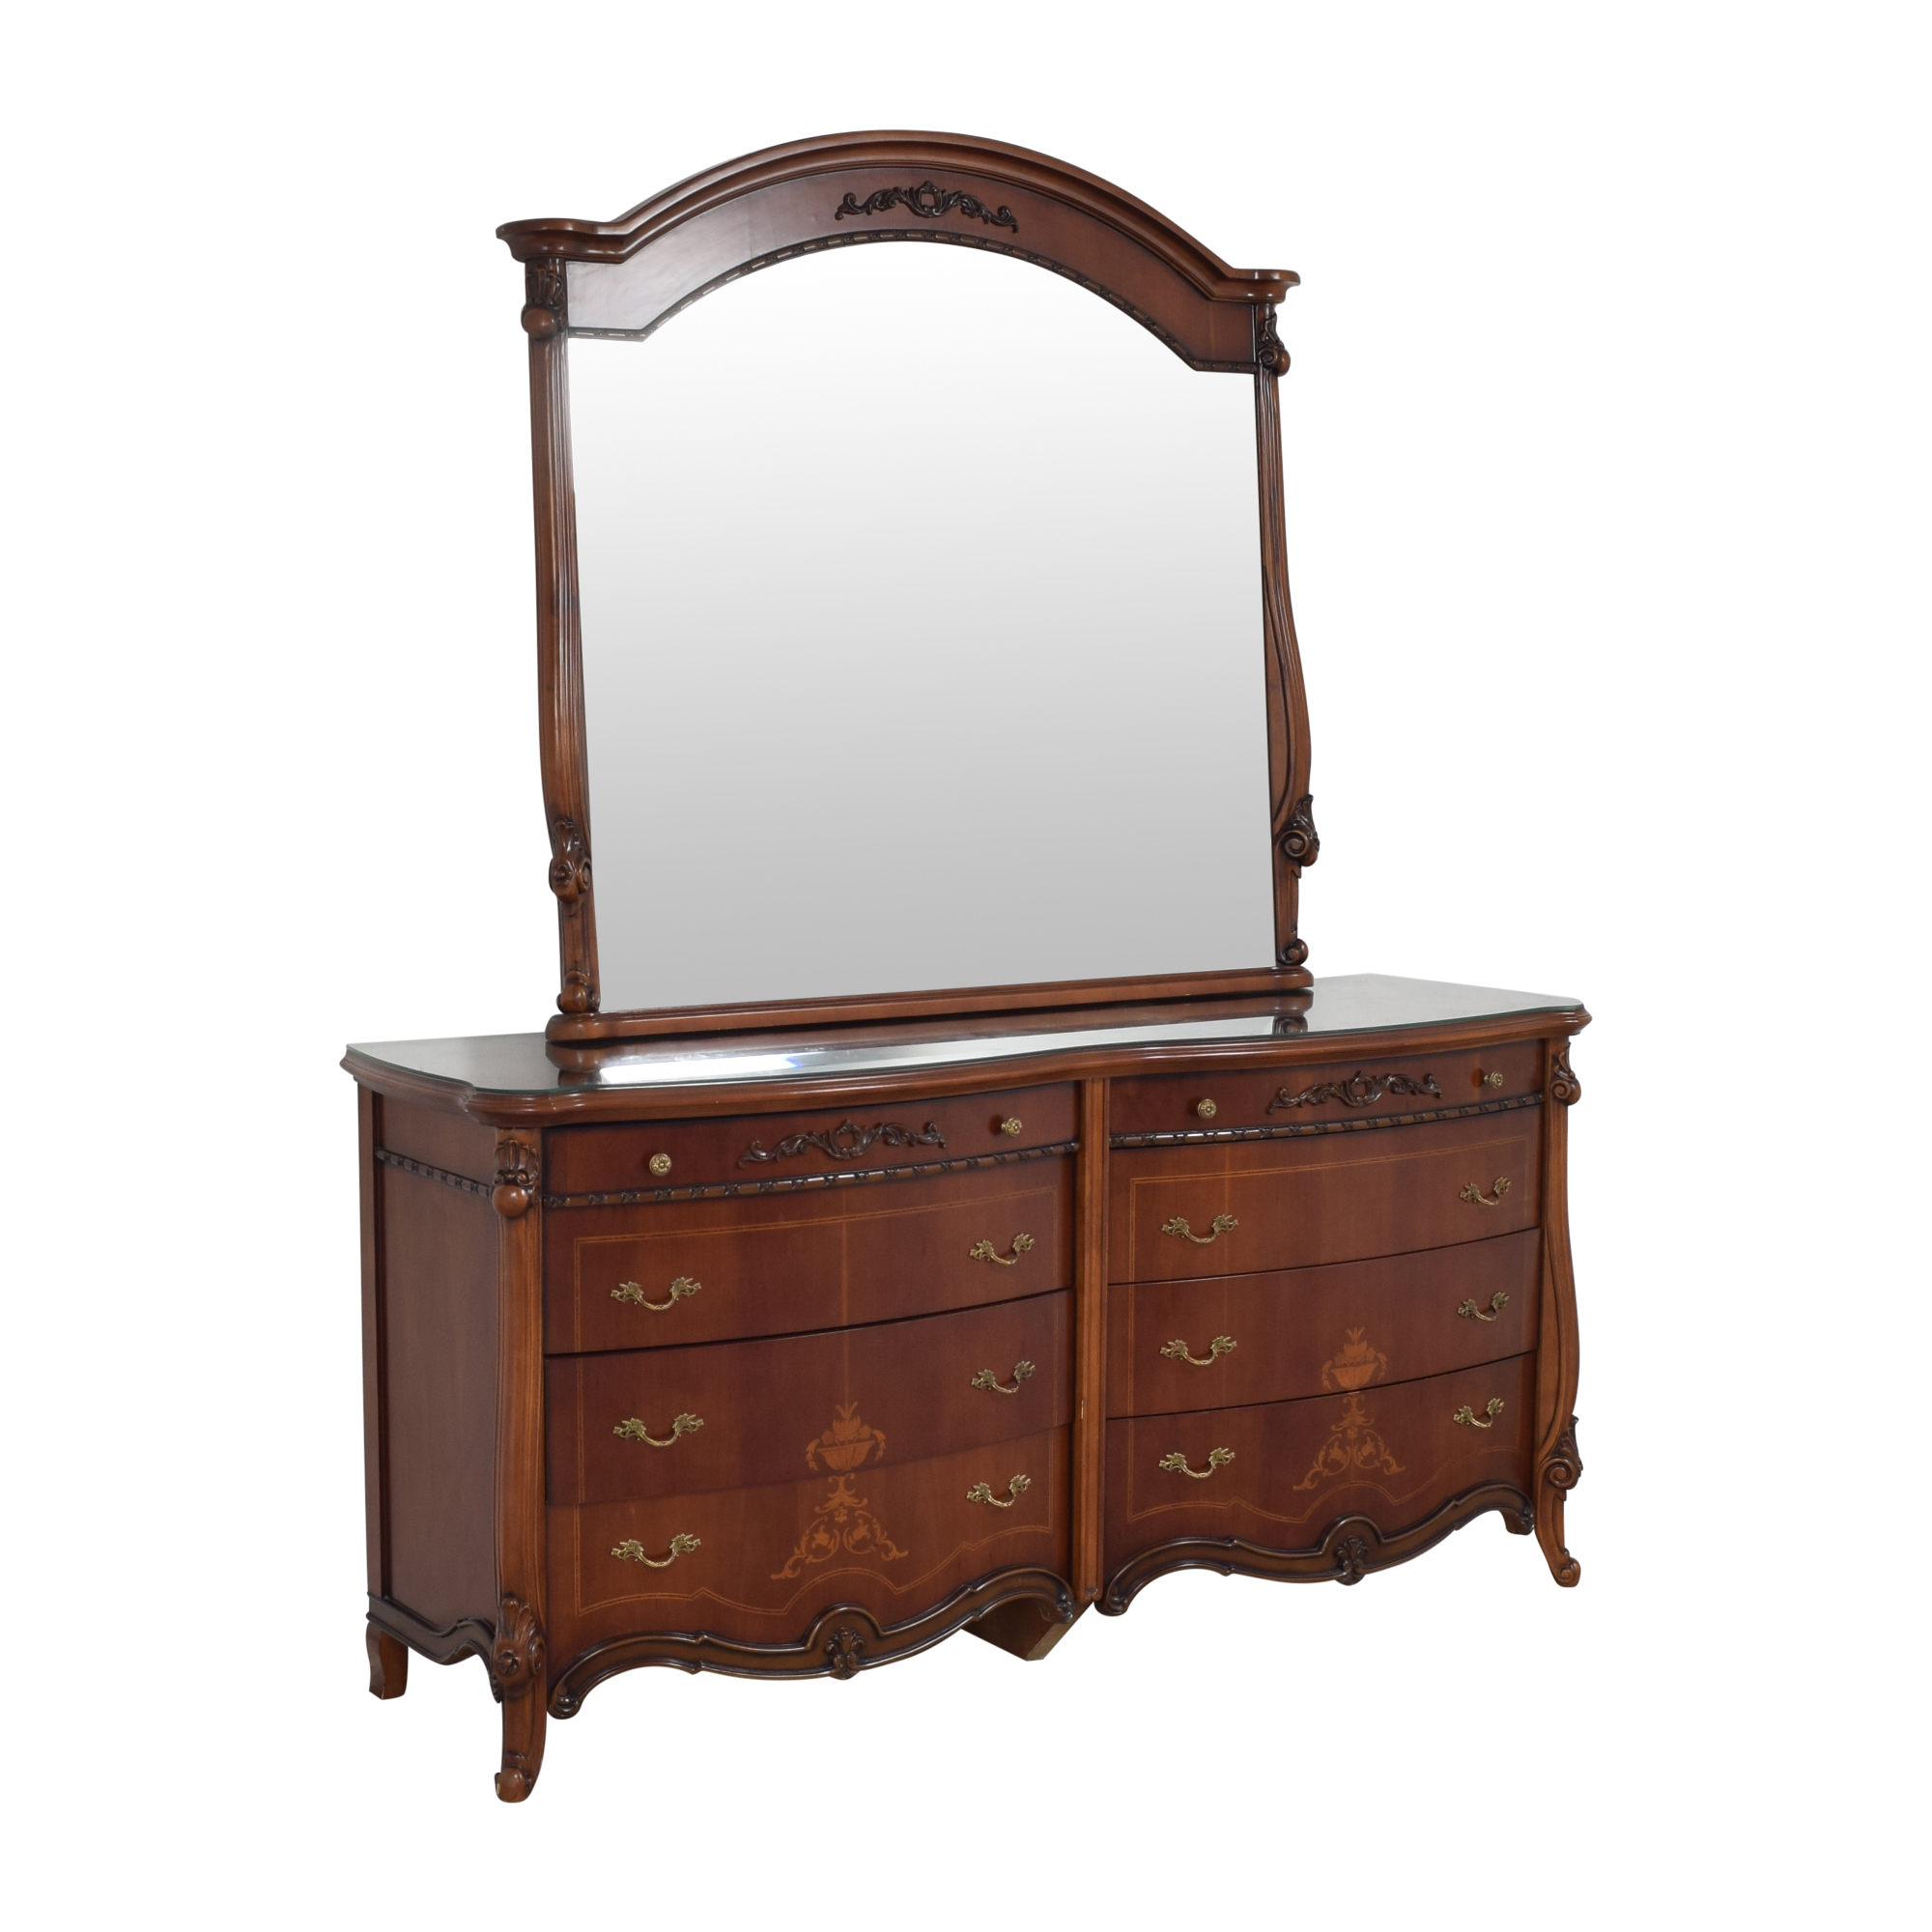 Double Dresser with Mirror / Dressers